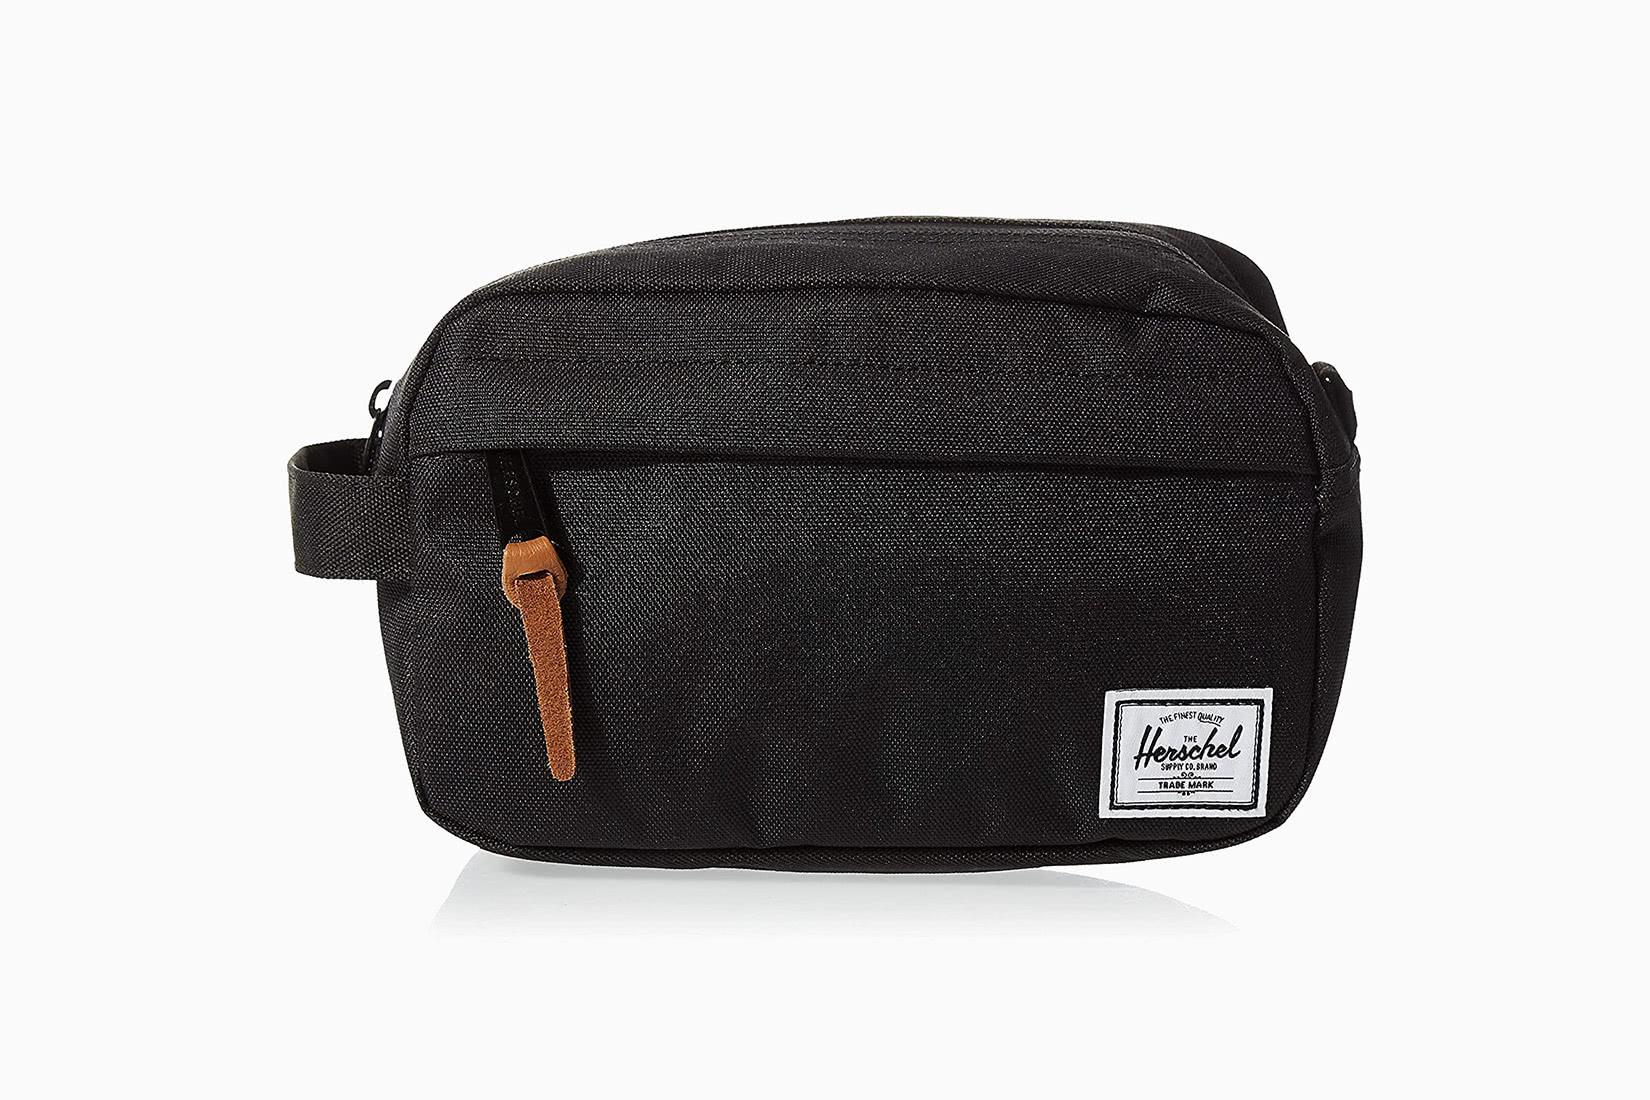 best dopp kit men canvas herschel review - Luxe Digital